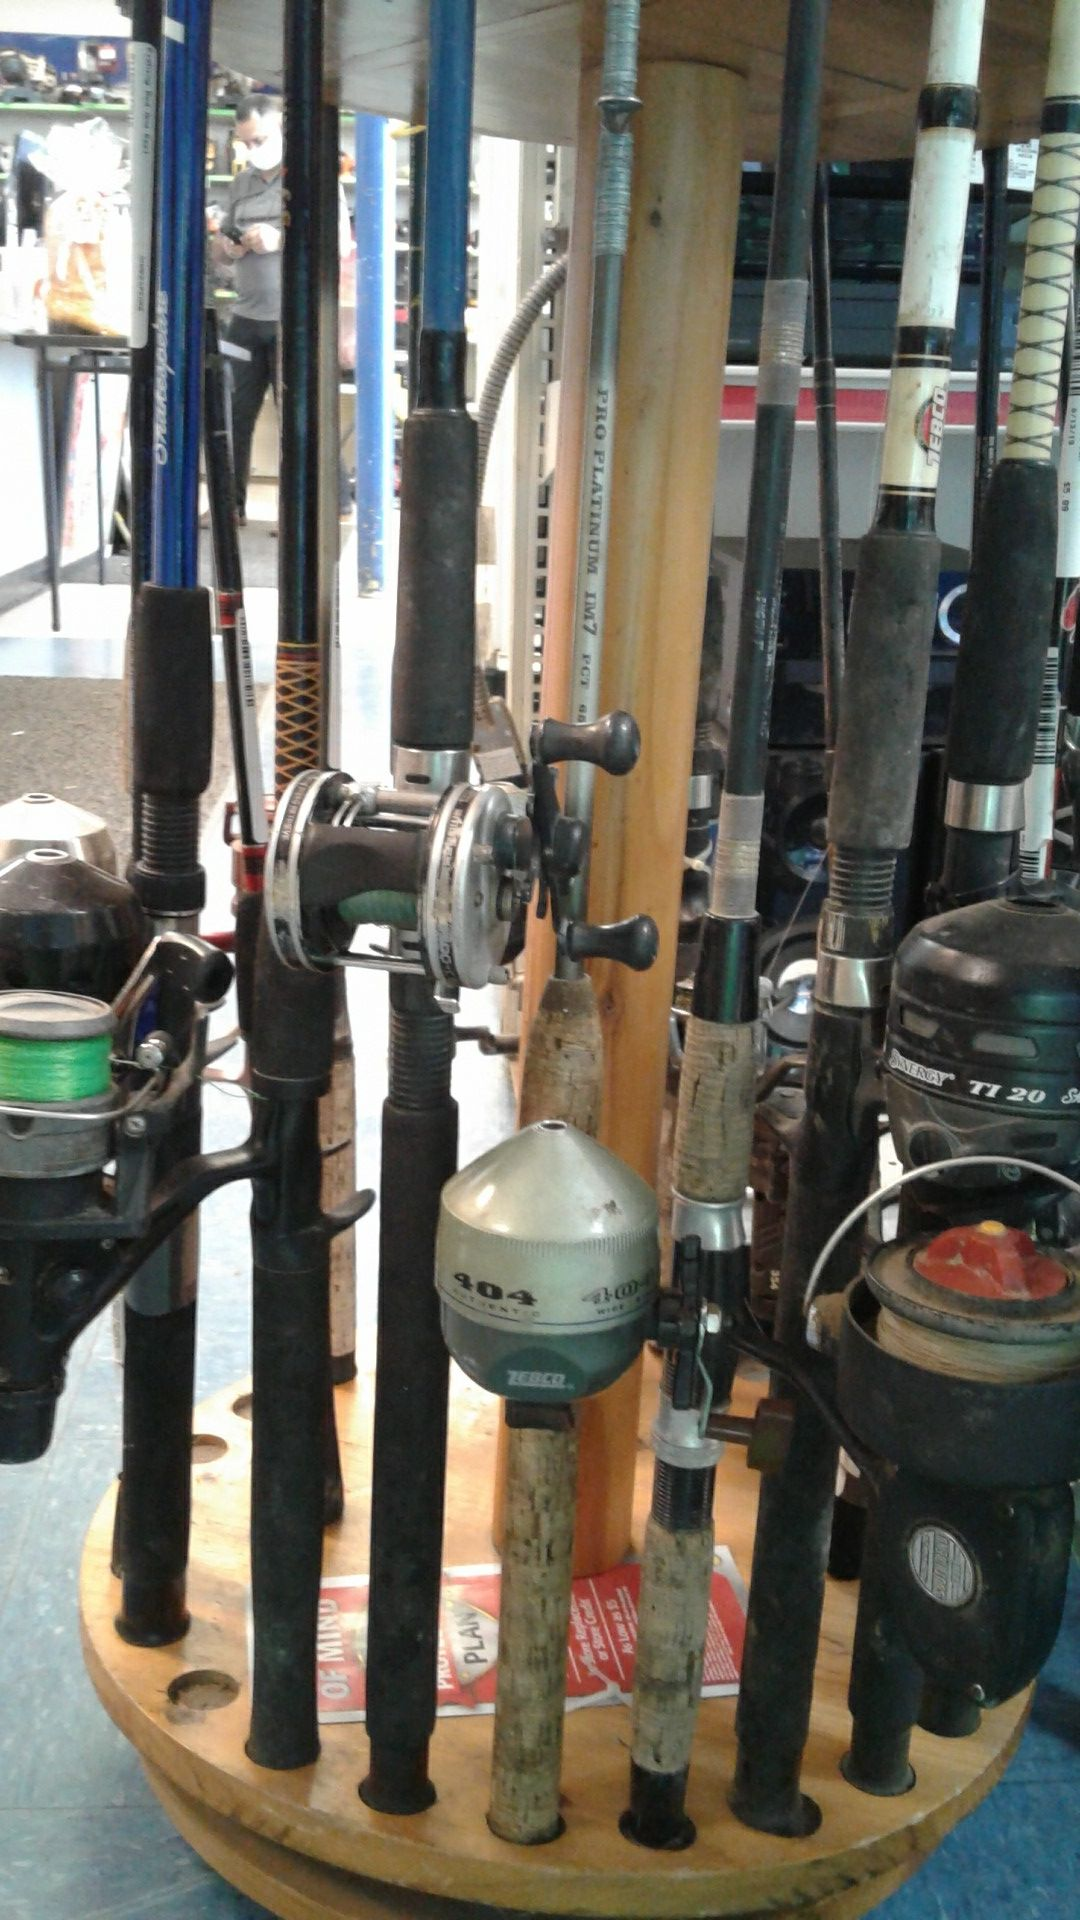 Fishing rod and reels available